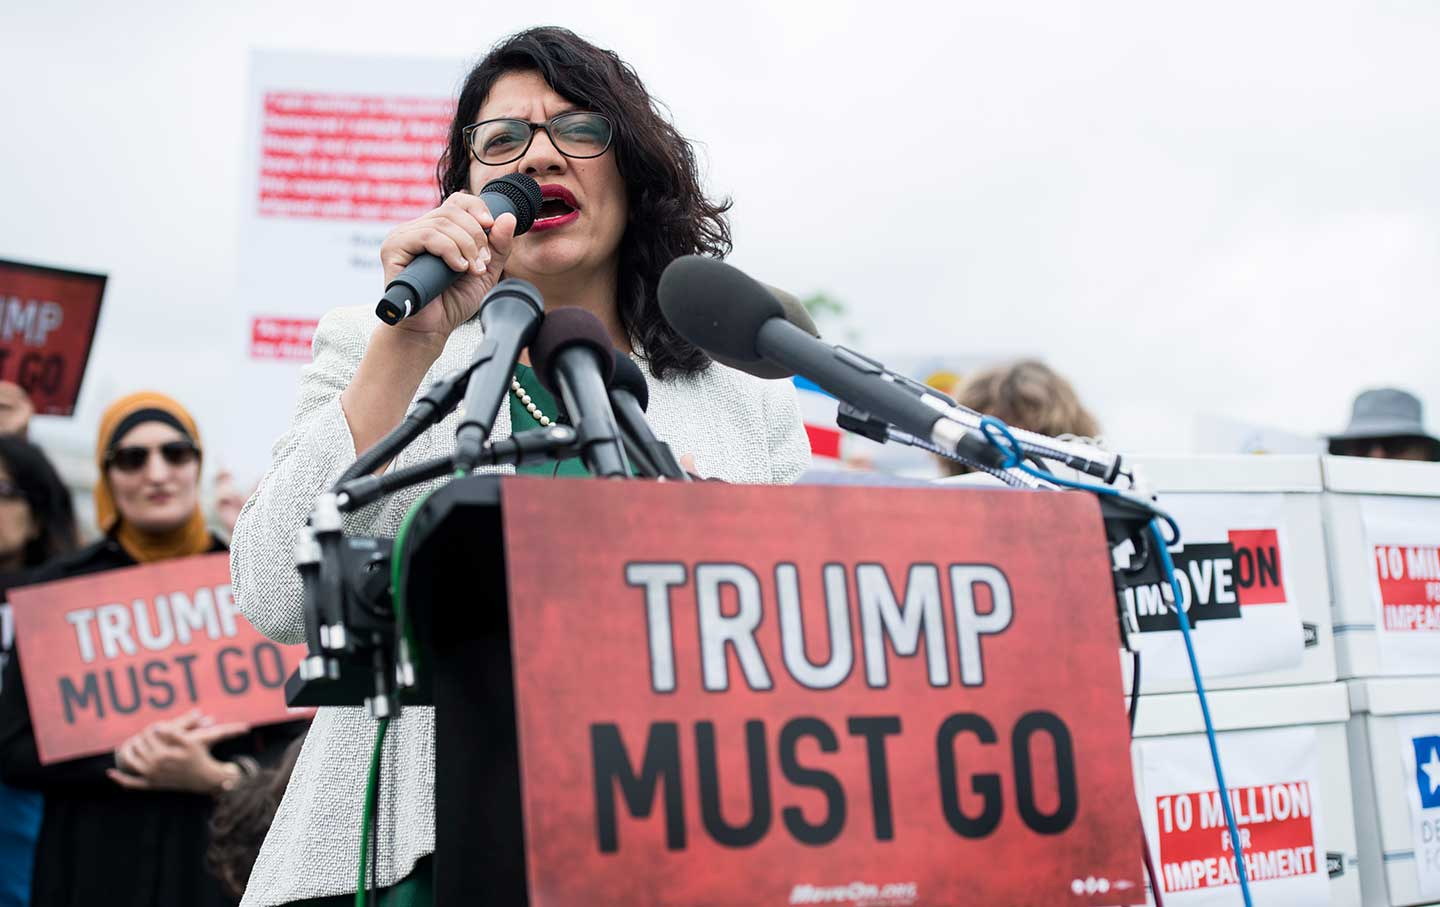 Rashida Tlaib calls for impeachment